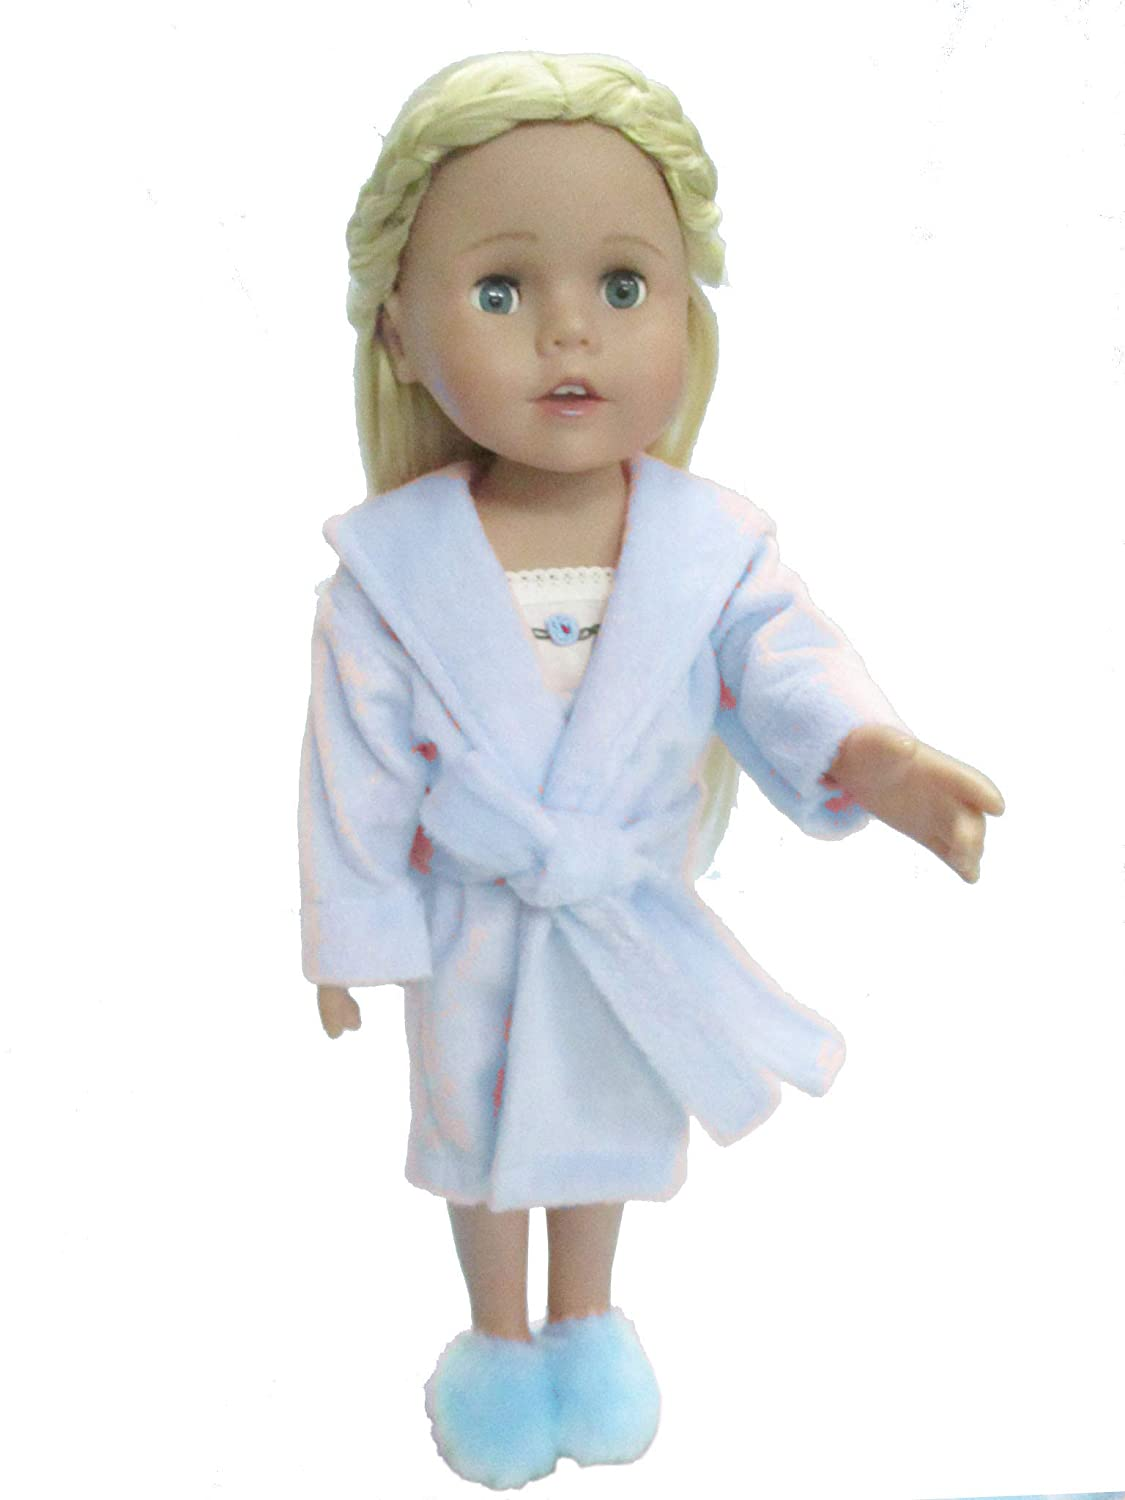 Castle Toy Lissi New Born Celina 13 Baby Doll Lissi Dolls and Toys